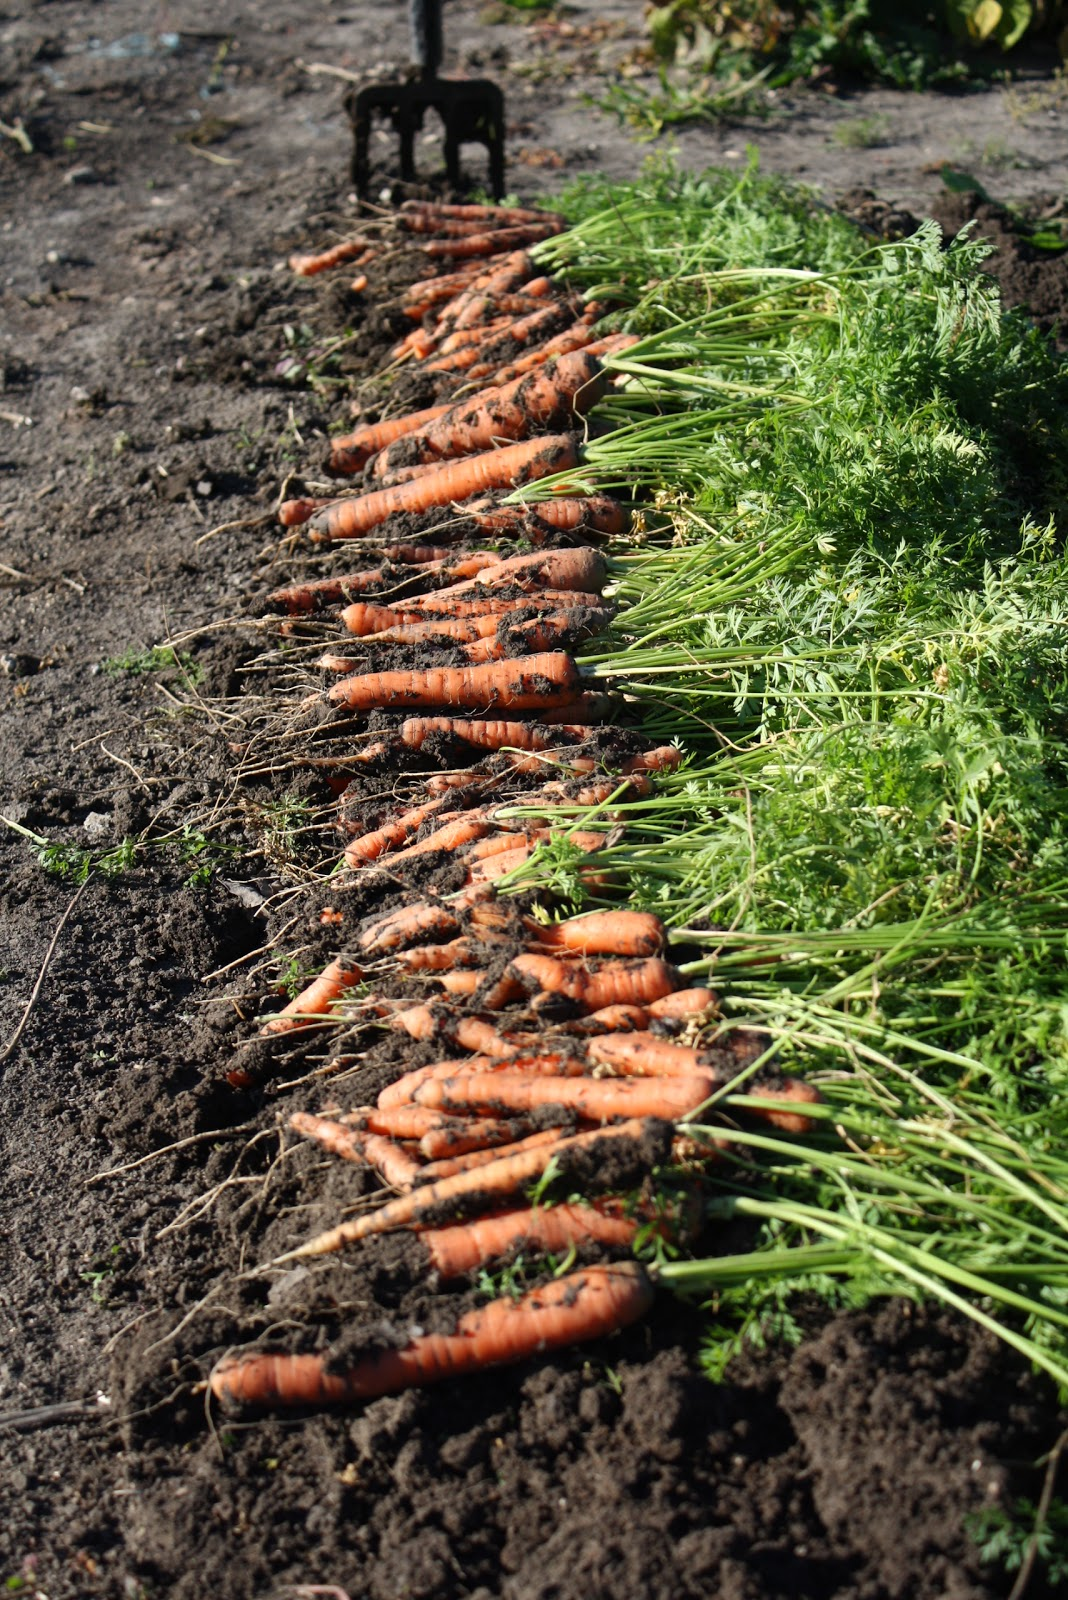 Veggie delight a manitoba garden how we plant carrots for Soil your pants